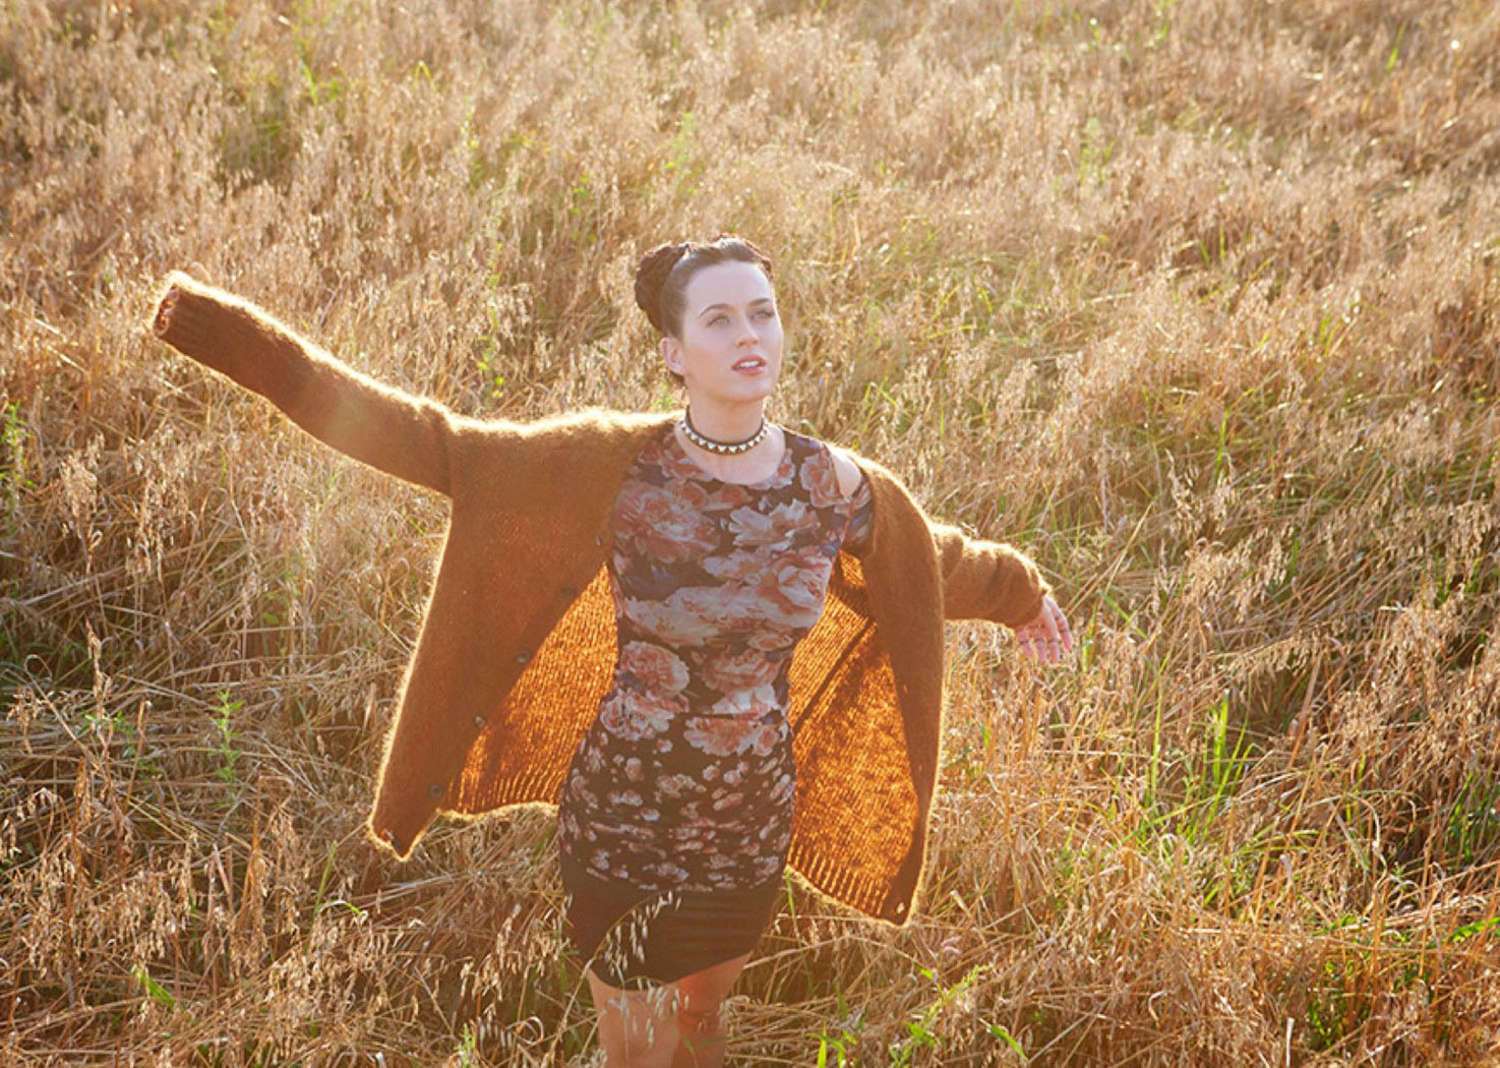 Katy-Perry---Prism-Album-Photoshoot--02.